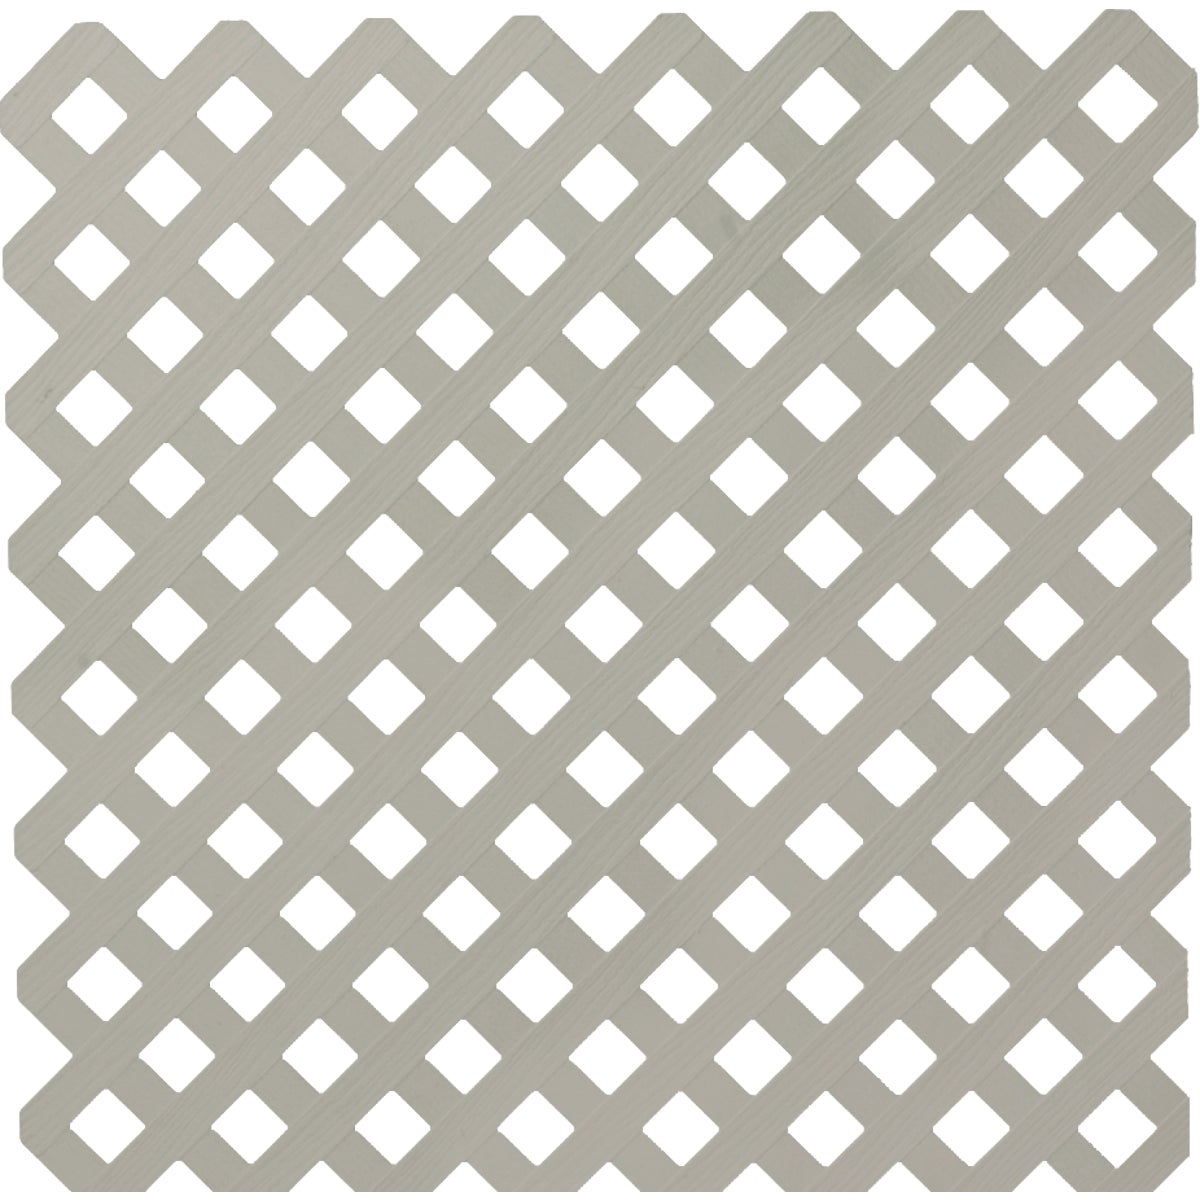 4X8 GRAY PRIVACY LATTICE - 79942 by Ufpi   Plstc Lattice